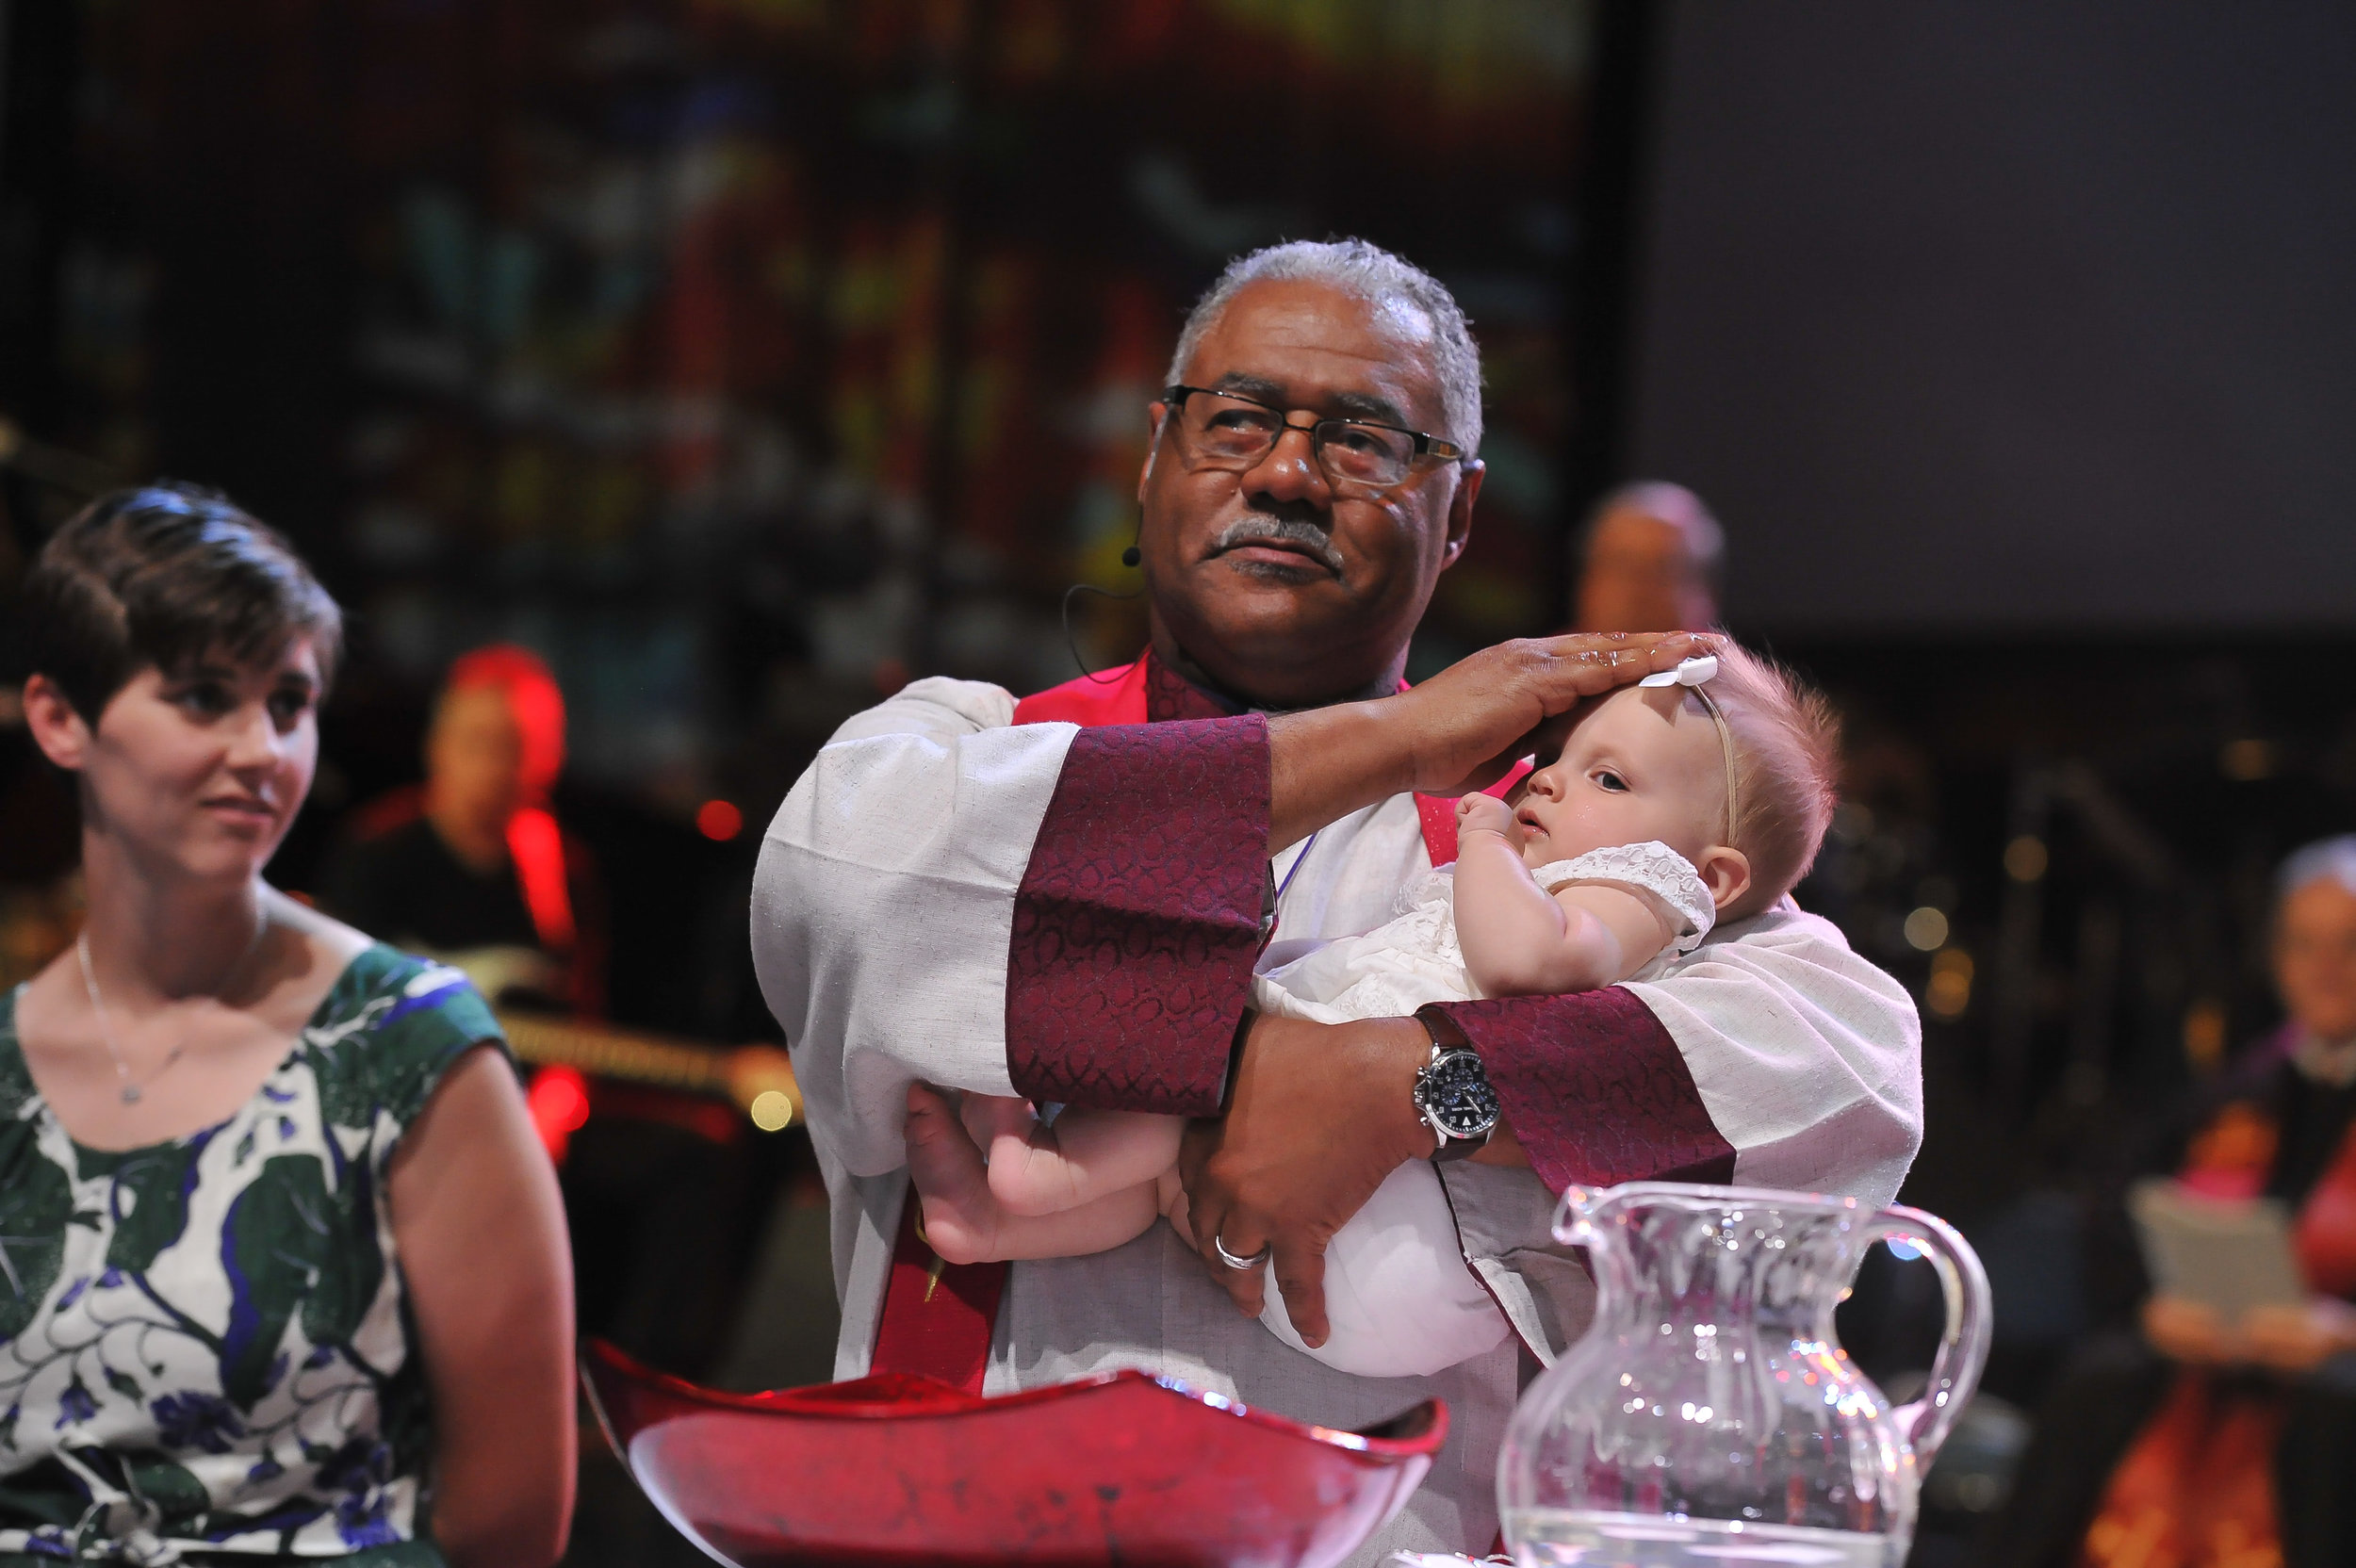 Bishop Julius C. Trimble baptizes a baby at The Commissioning and Ordination Service at the 2017 INUMC Annual Conference in Indianapolis.